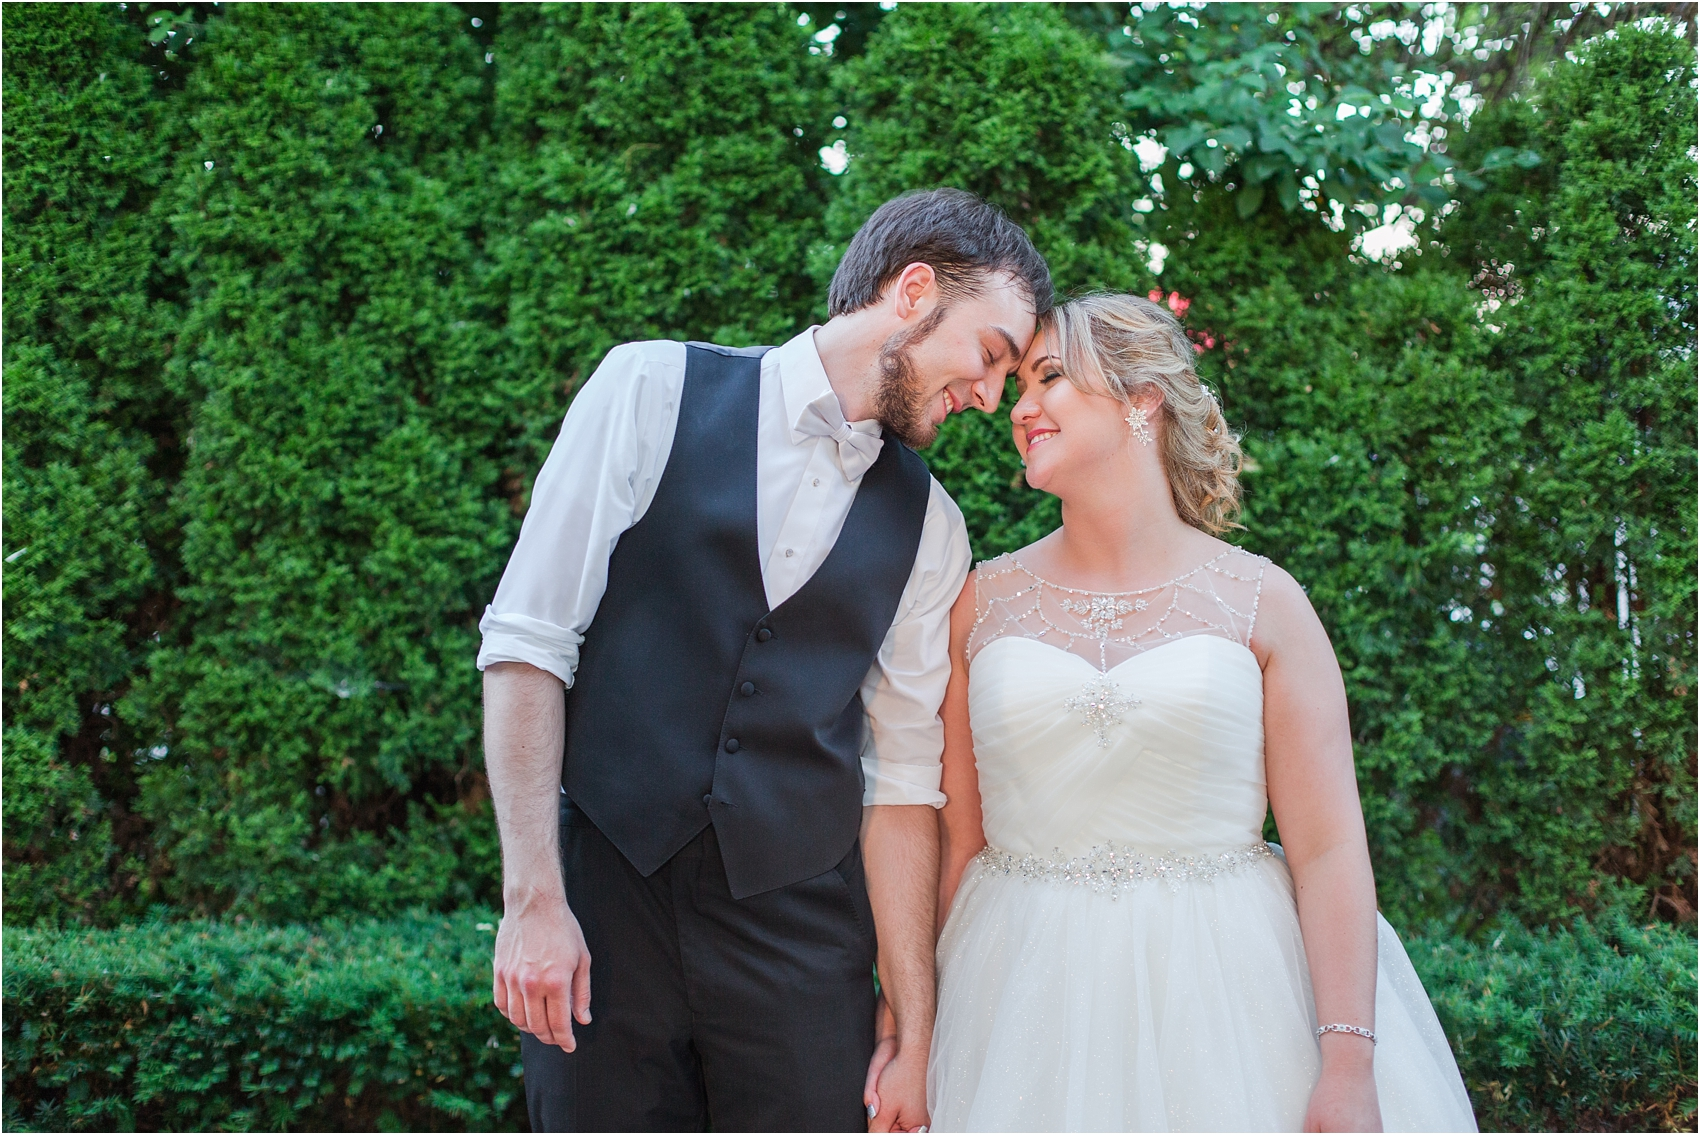 lord-of-the-rings-inspired-wedding-photos-at-crystal-gardens-in-howell-mi-by-courtney-carolyn-photography_0100.jpg